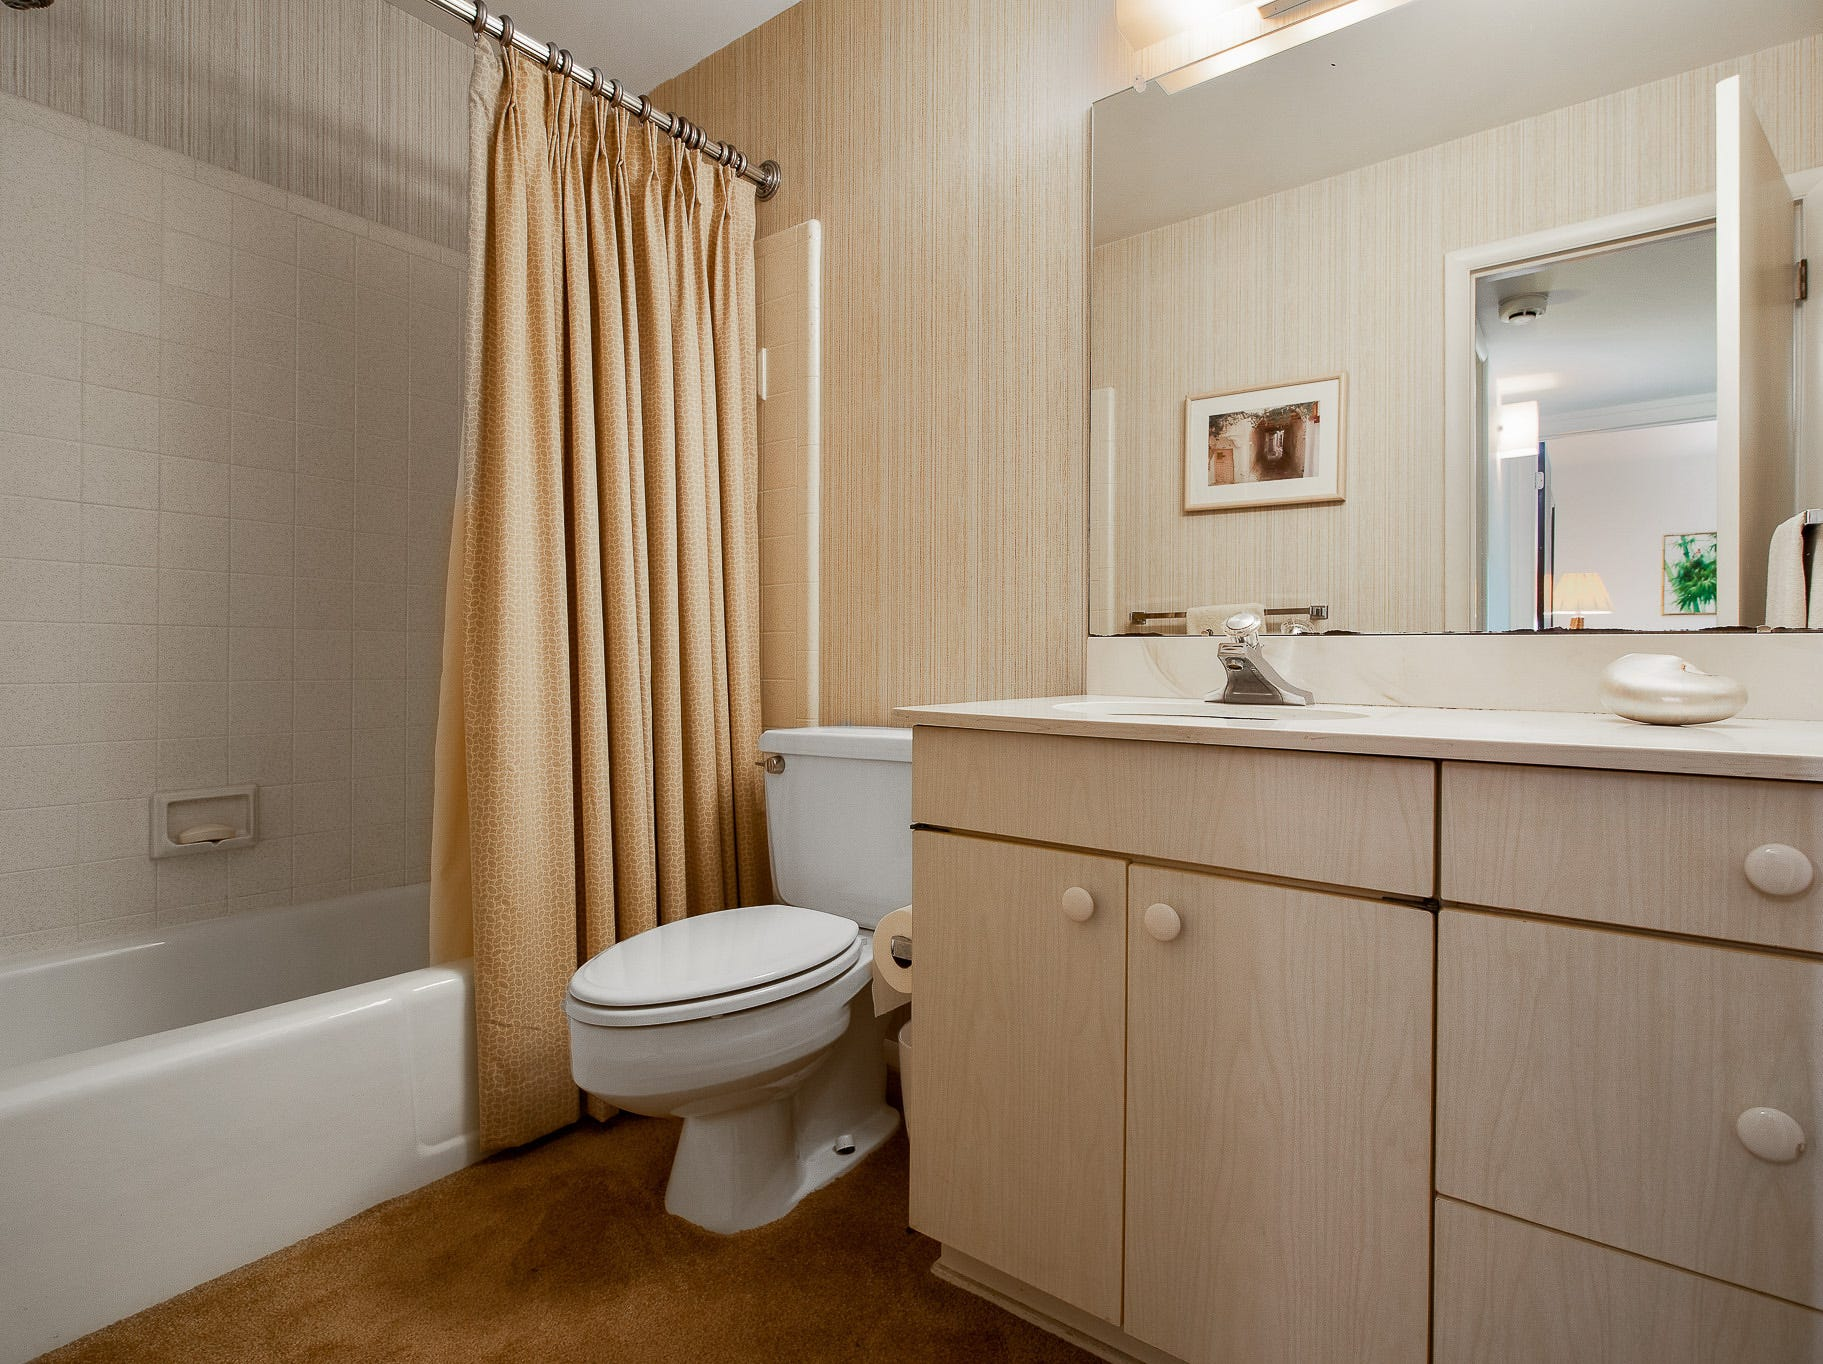 The house at 110 Thissell in Greenville has three bathrooms.